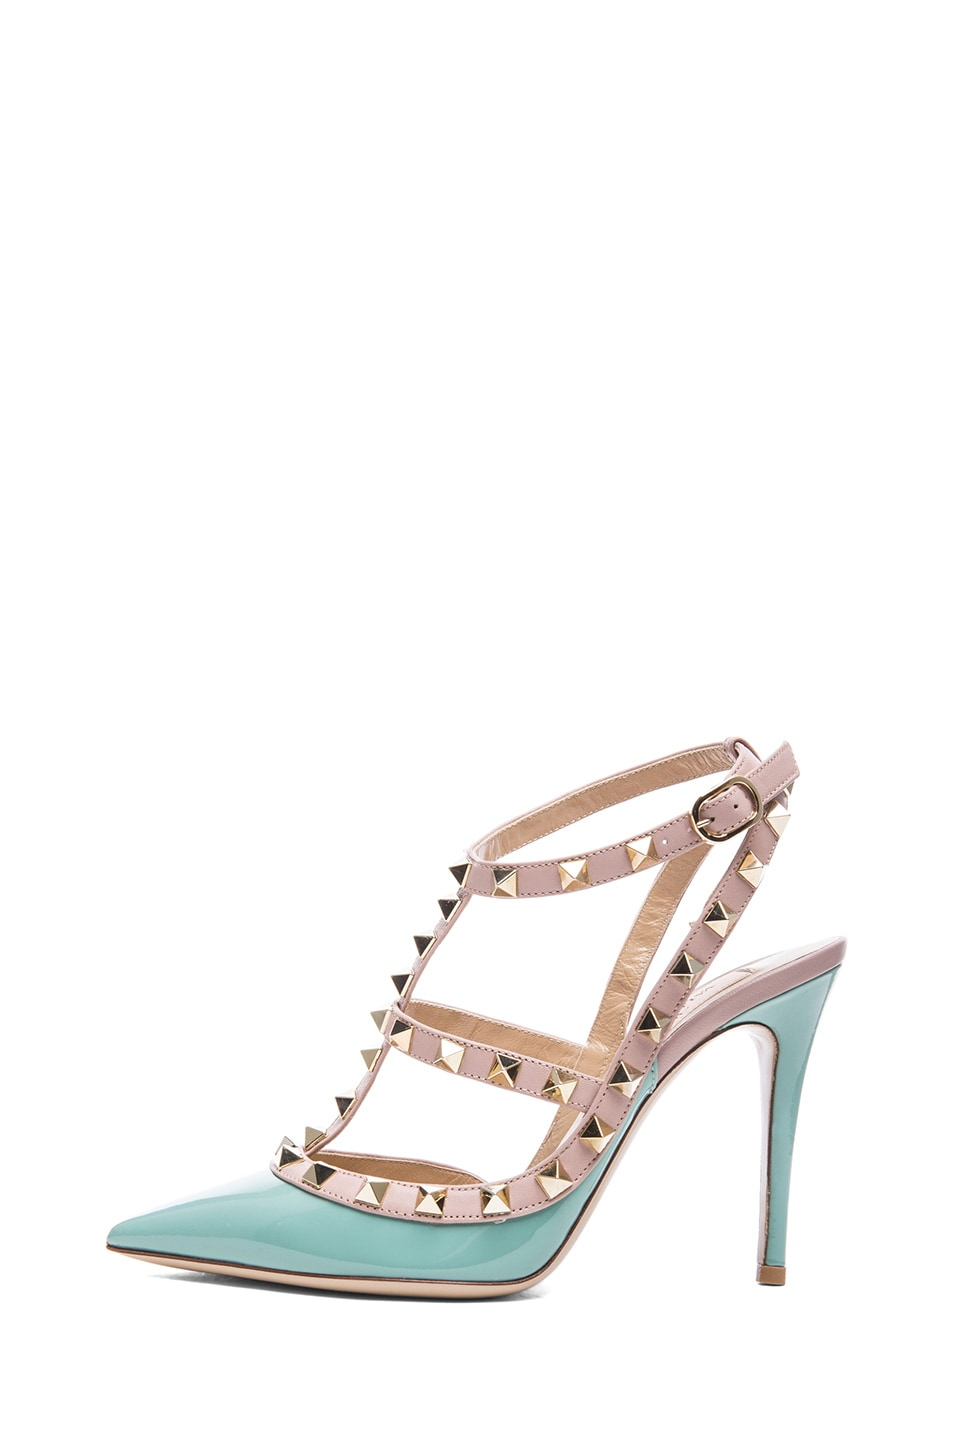 Image 1 of Valentino Rockstud Patent Leather Slingback T.100 in Dusty Sky